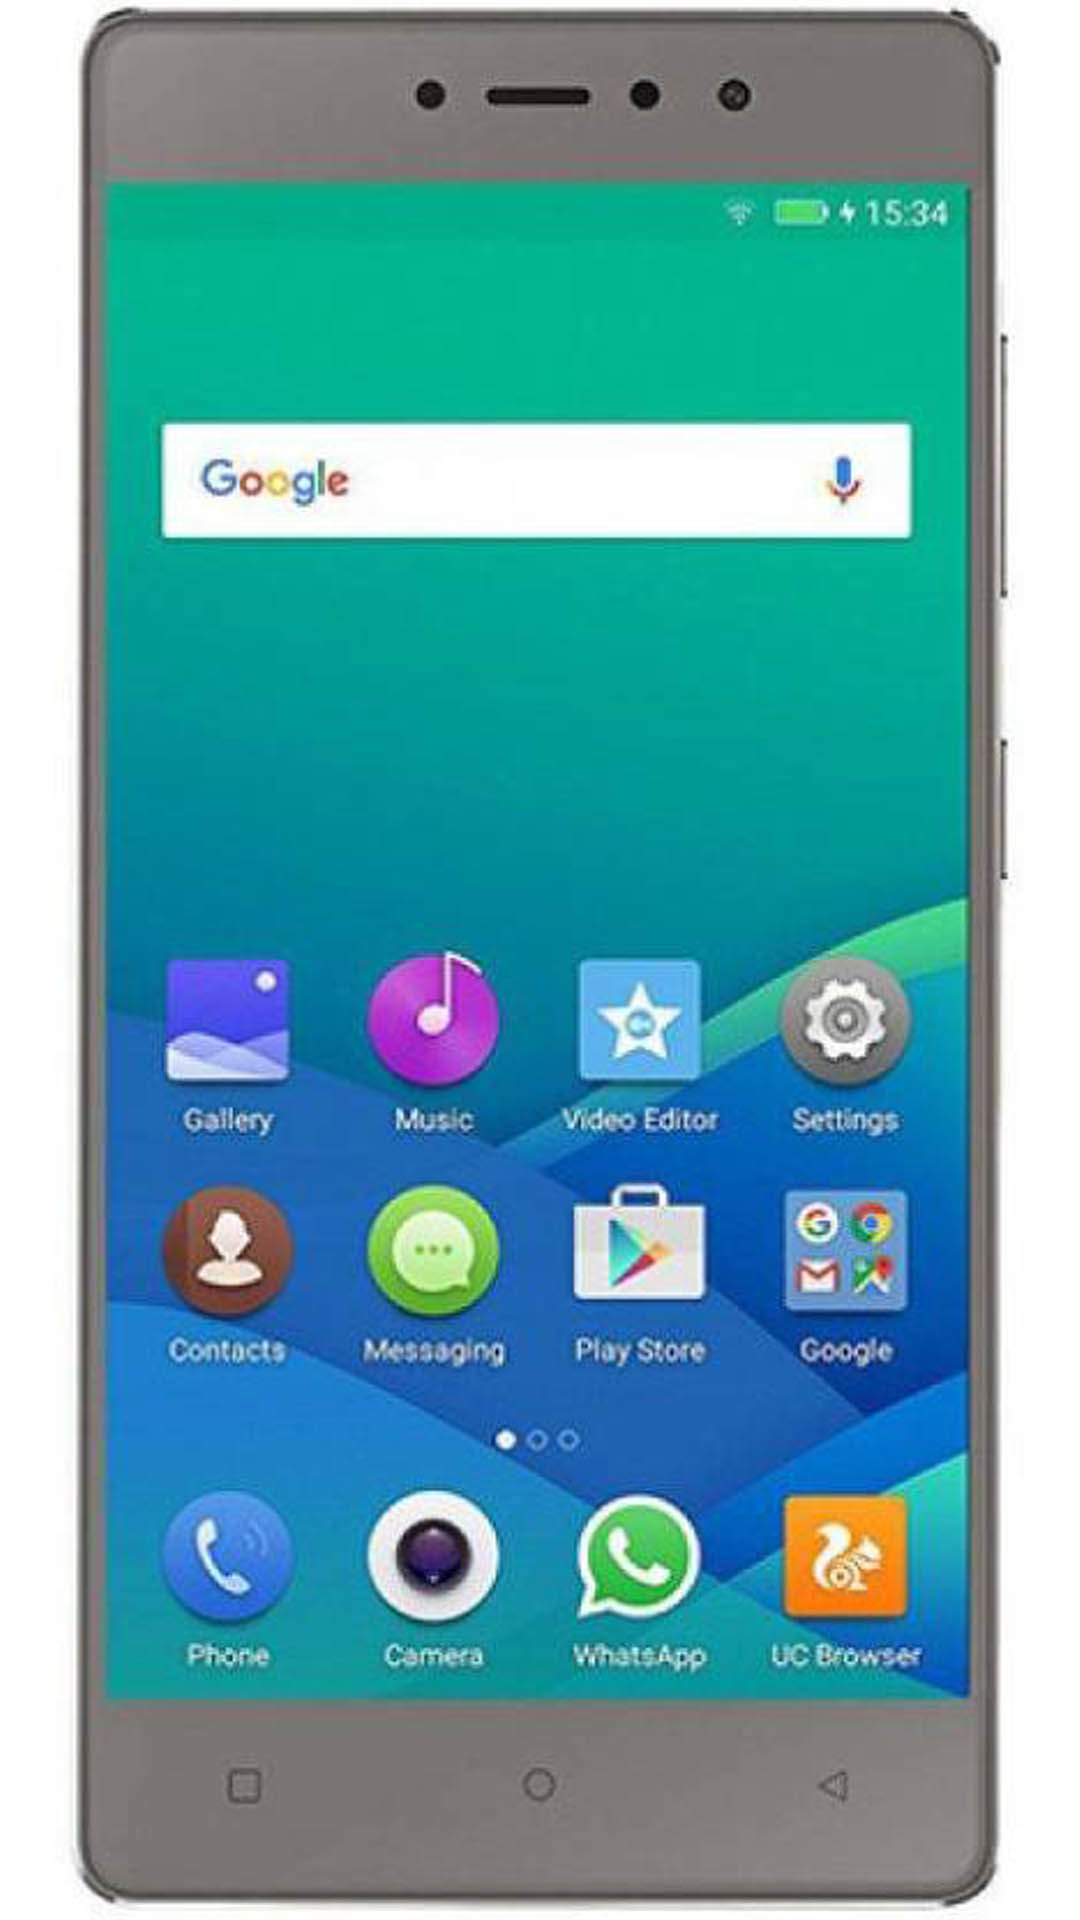 Xiaomi Redmi 2 Prime Price Full Specifications Features At Ram 1 8gb Gionee S6s Mocha Gold